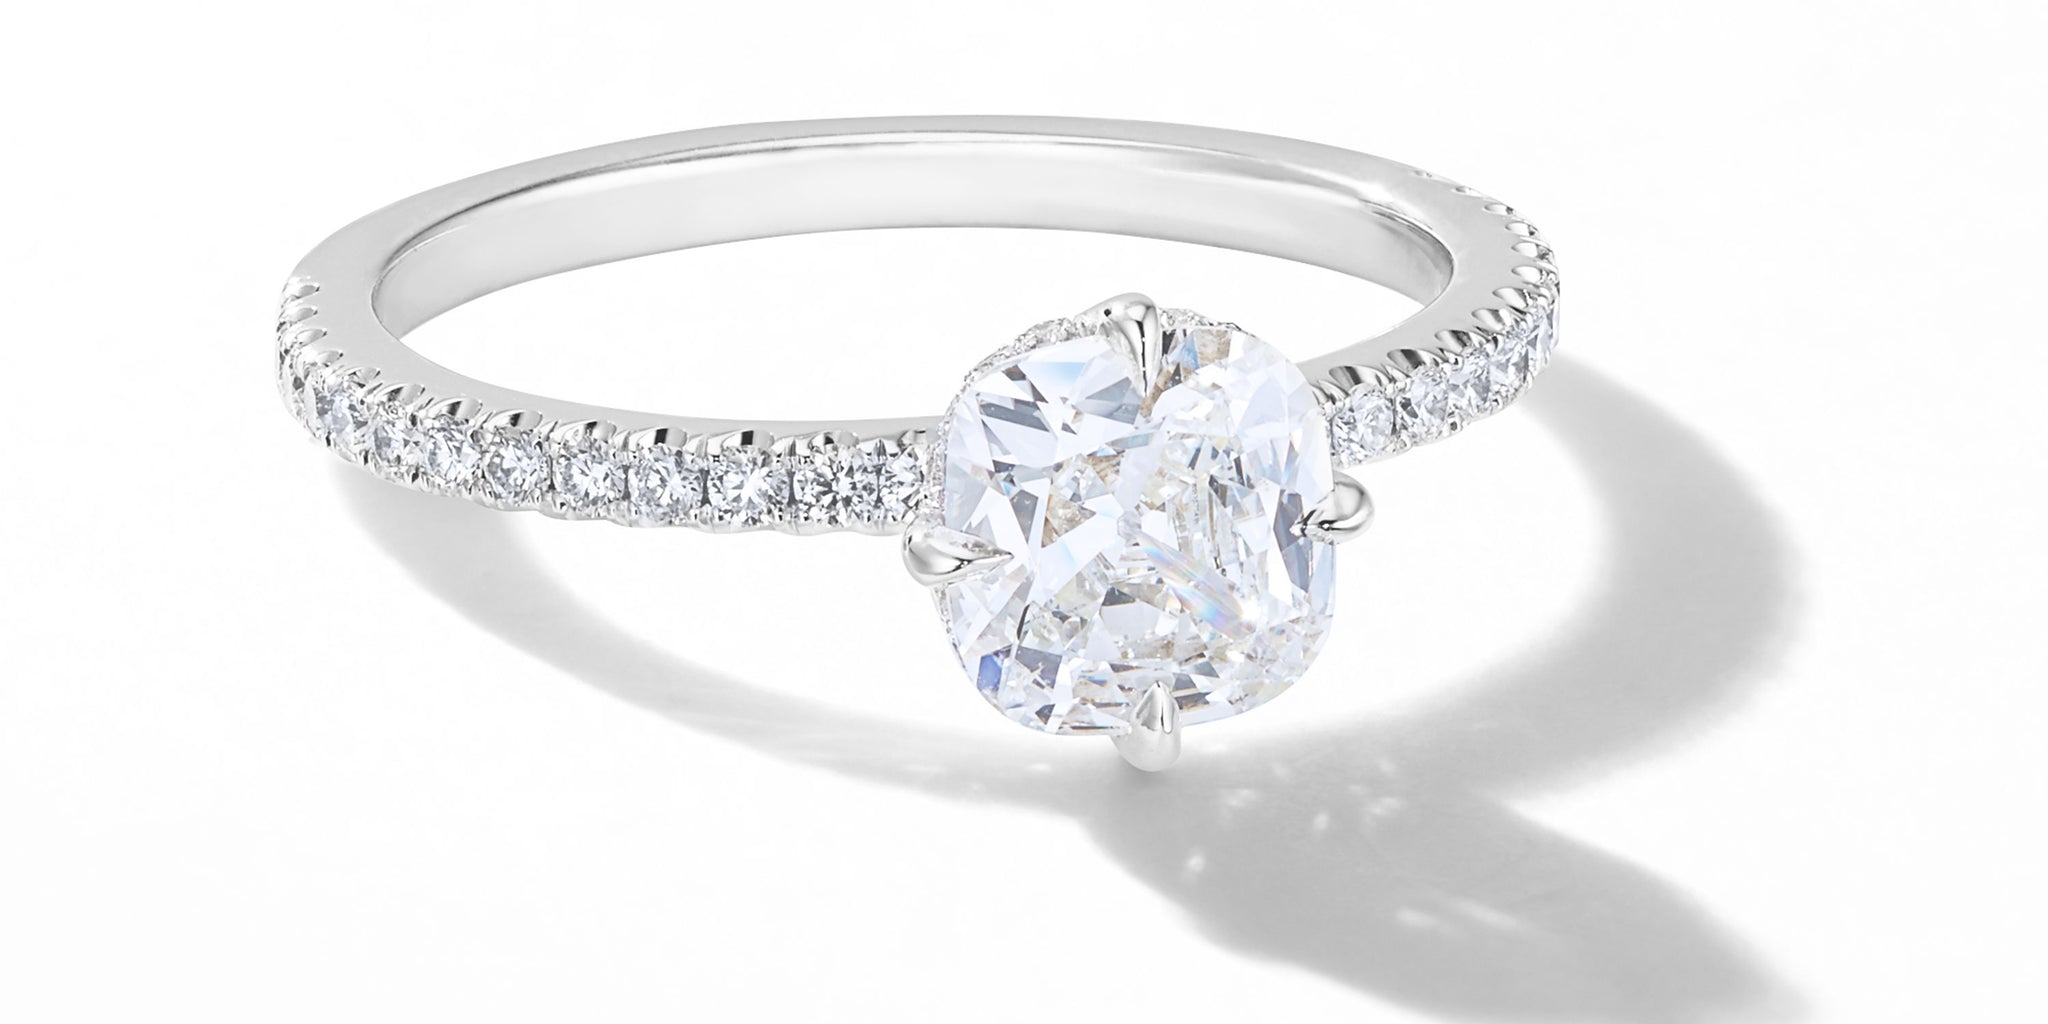 64Facets Custom Made Old Mine Cut Diamond Engagement Ring with Pave Details and 18k Gold